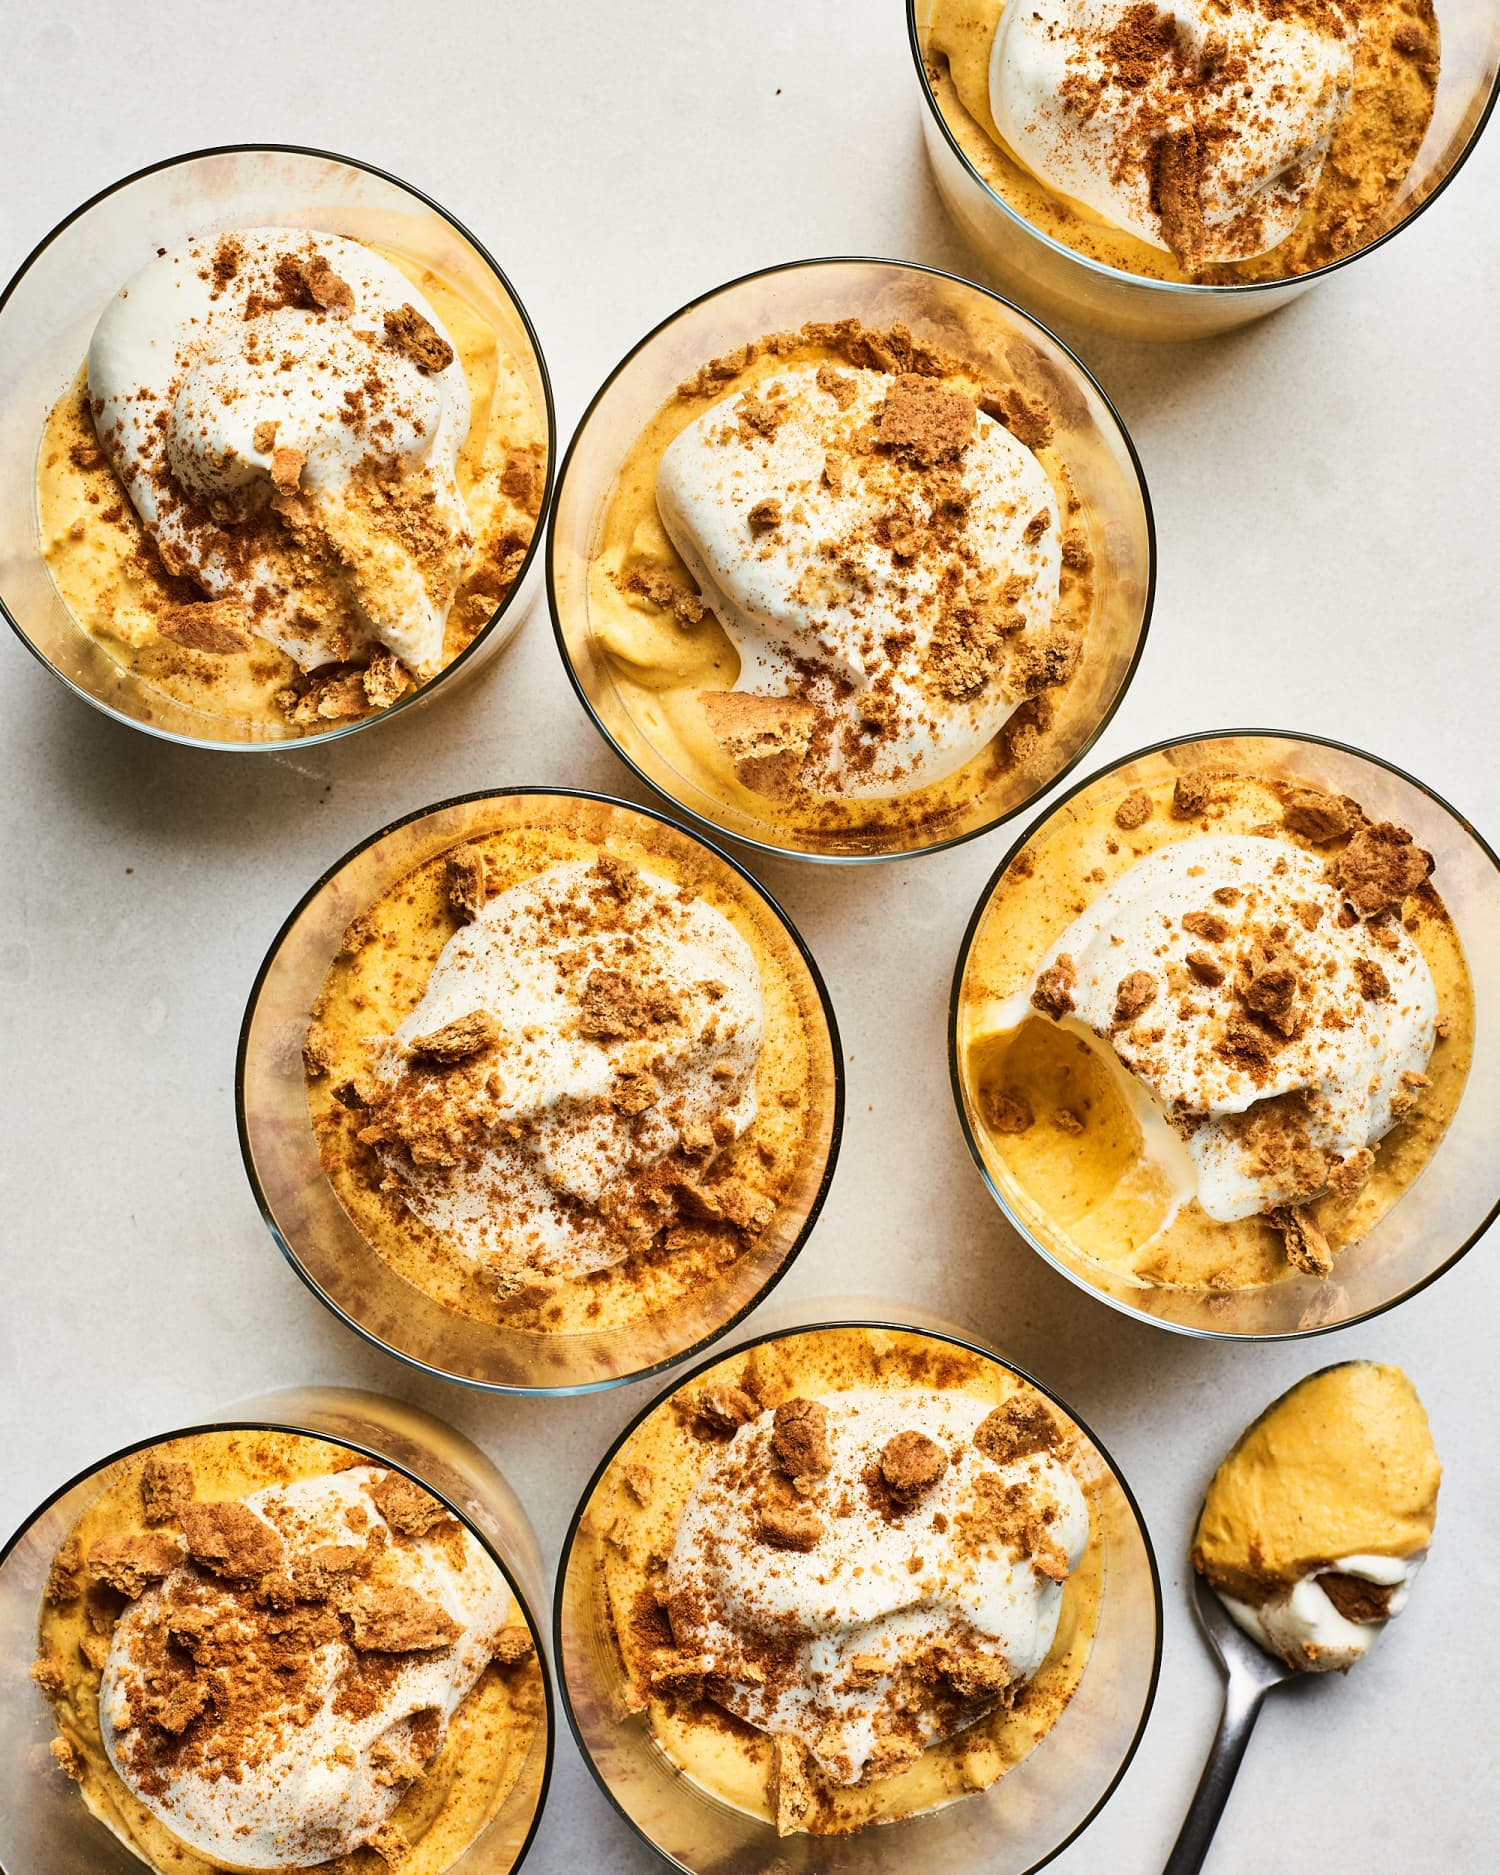 25 of Our Absolute Favorite Pumpkin Desserts